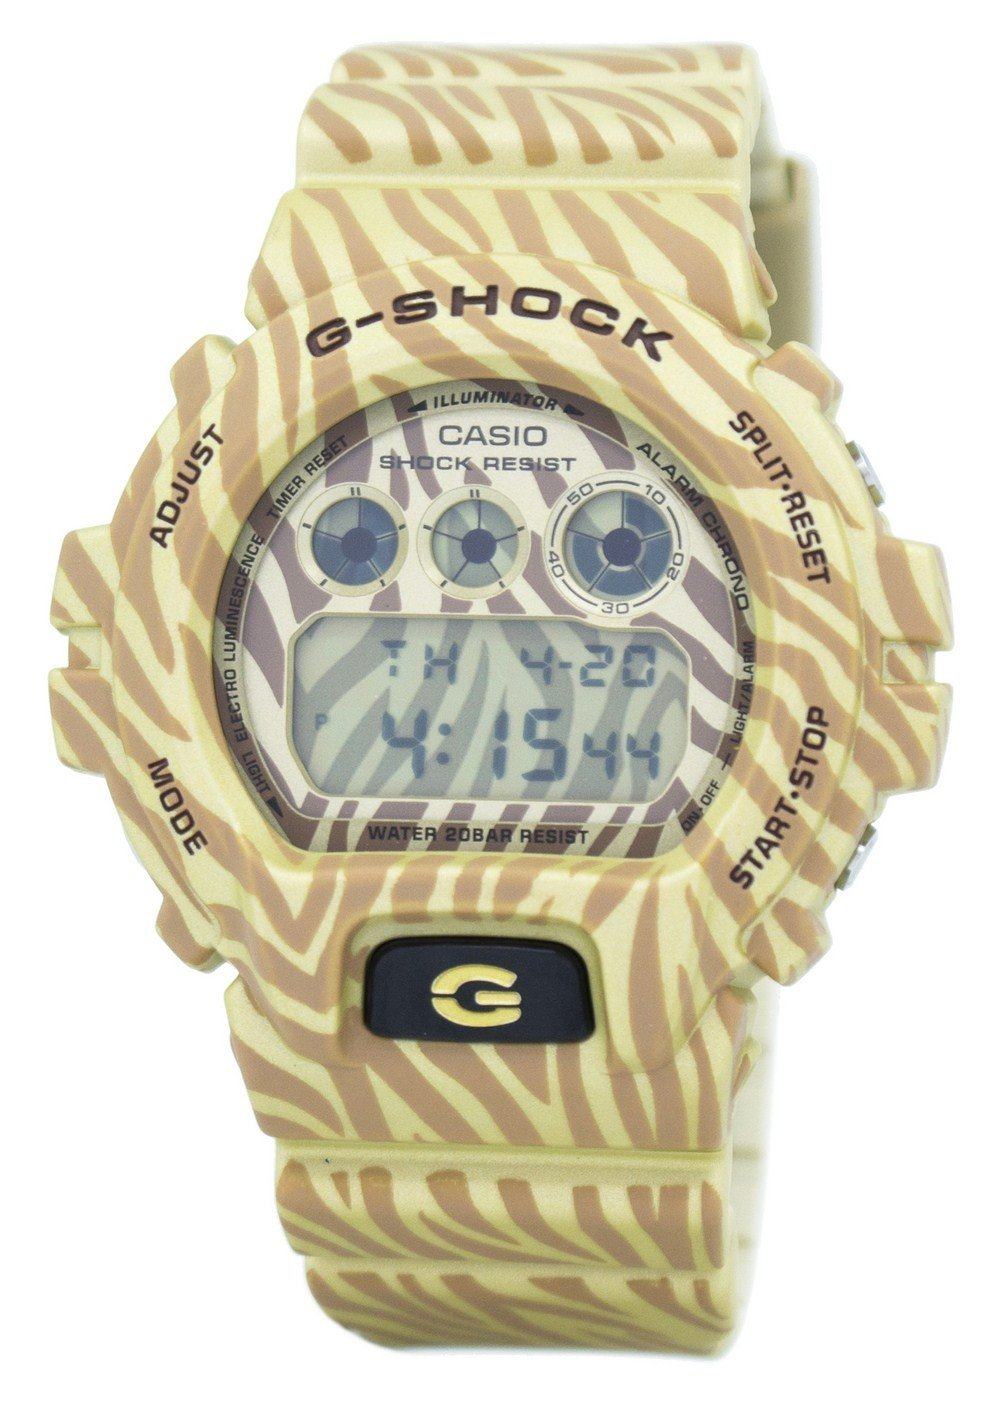 Casio G-Shock Illuminator DW-6900ZB-9 Men's Watch